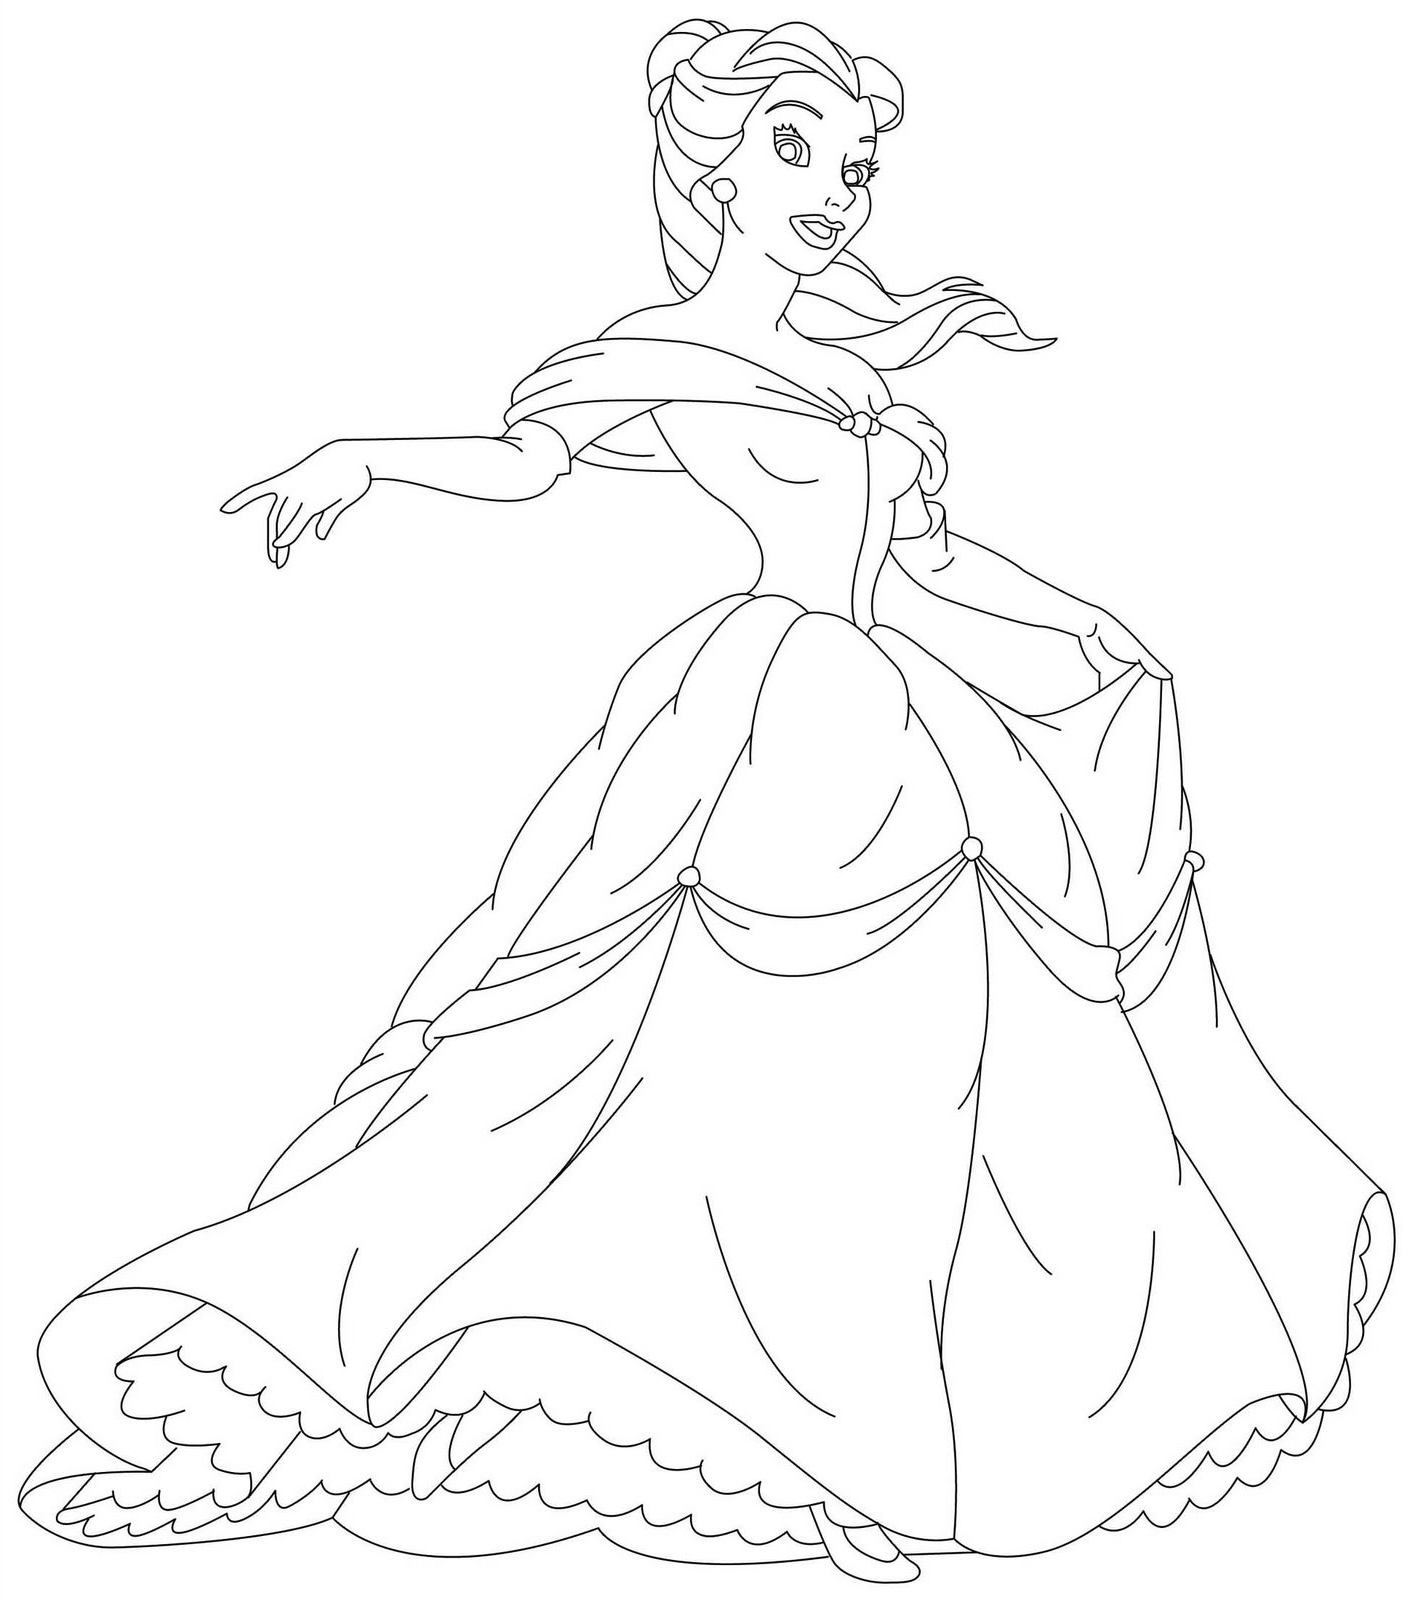 Disney Princesses Printable Coloring Pages Princess Images Printable